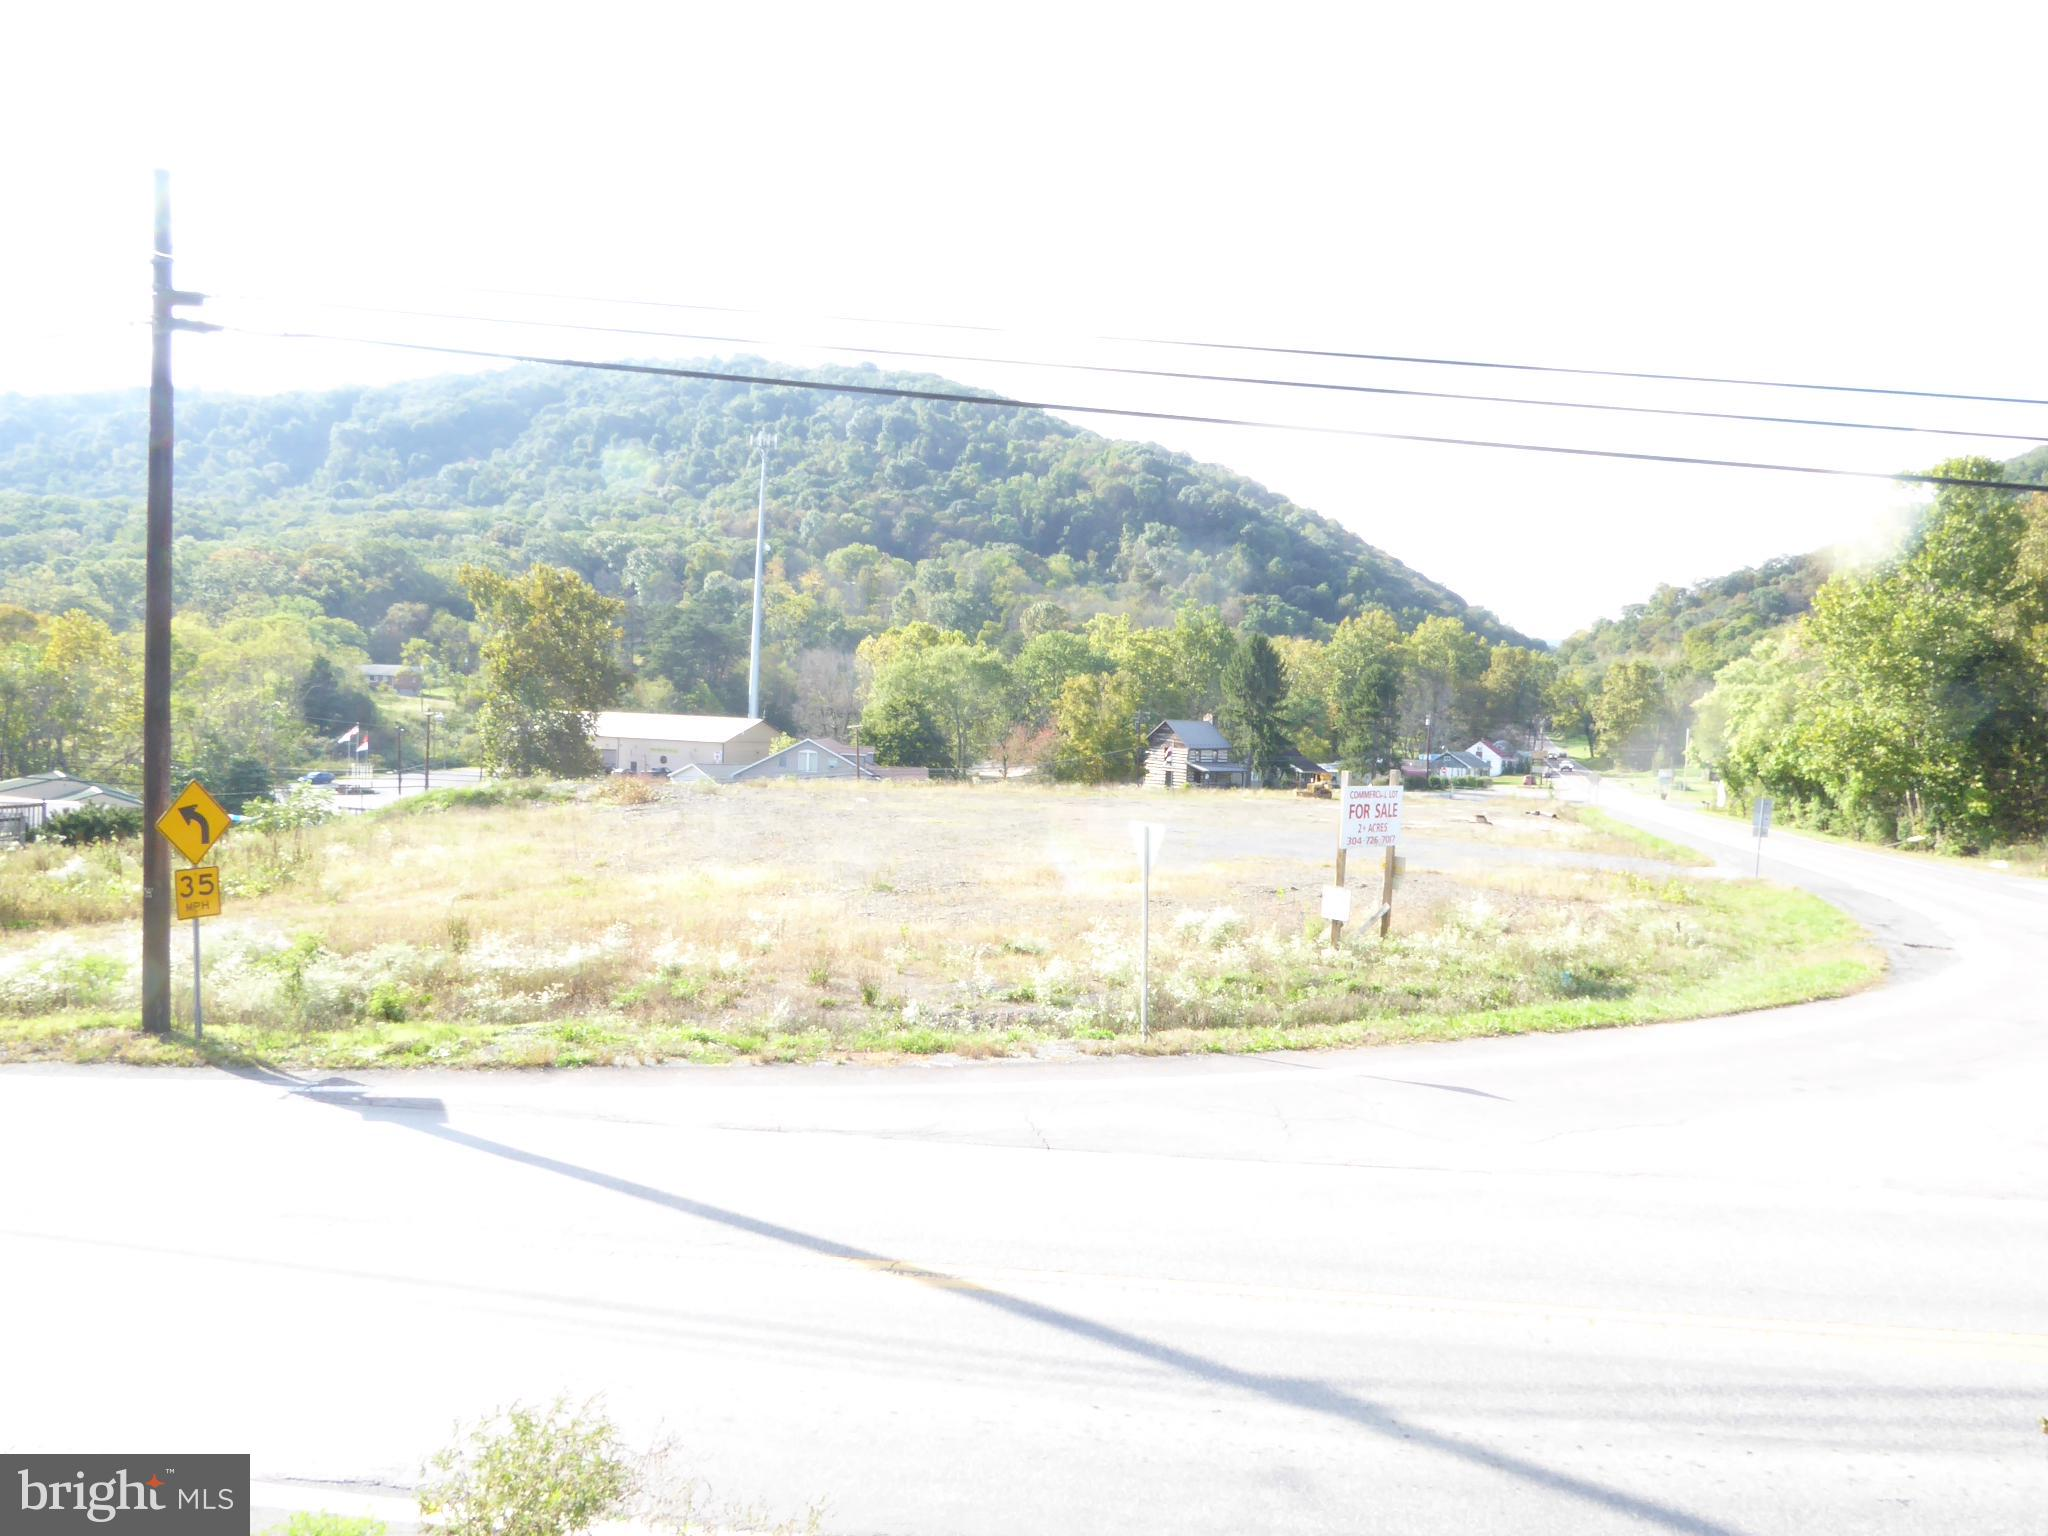 00 FRANKFORT HIGHWAY, SHORT GAP, WV 26726